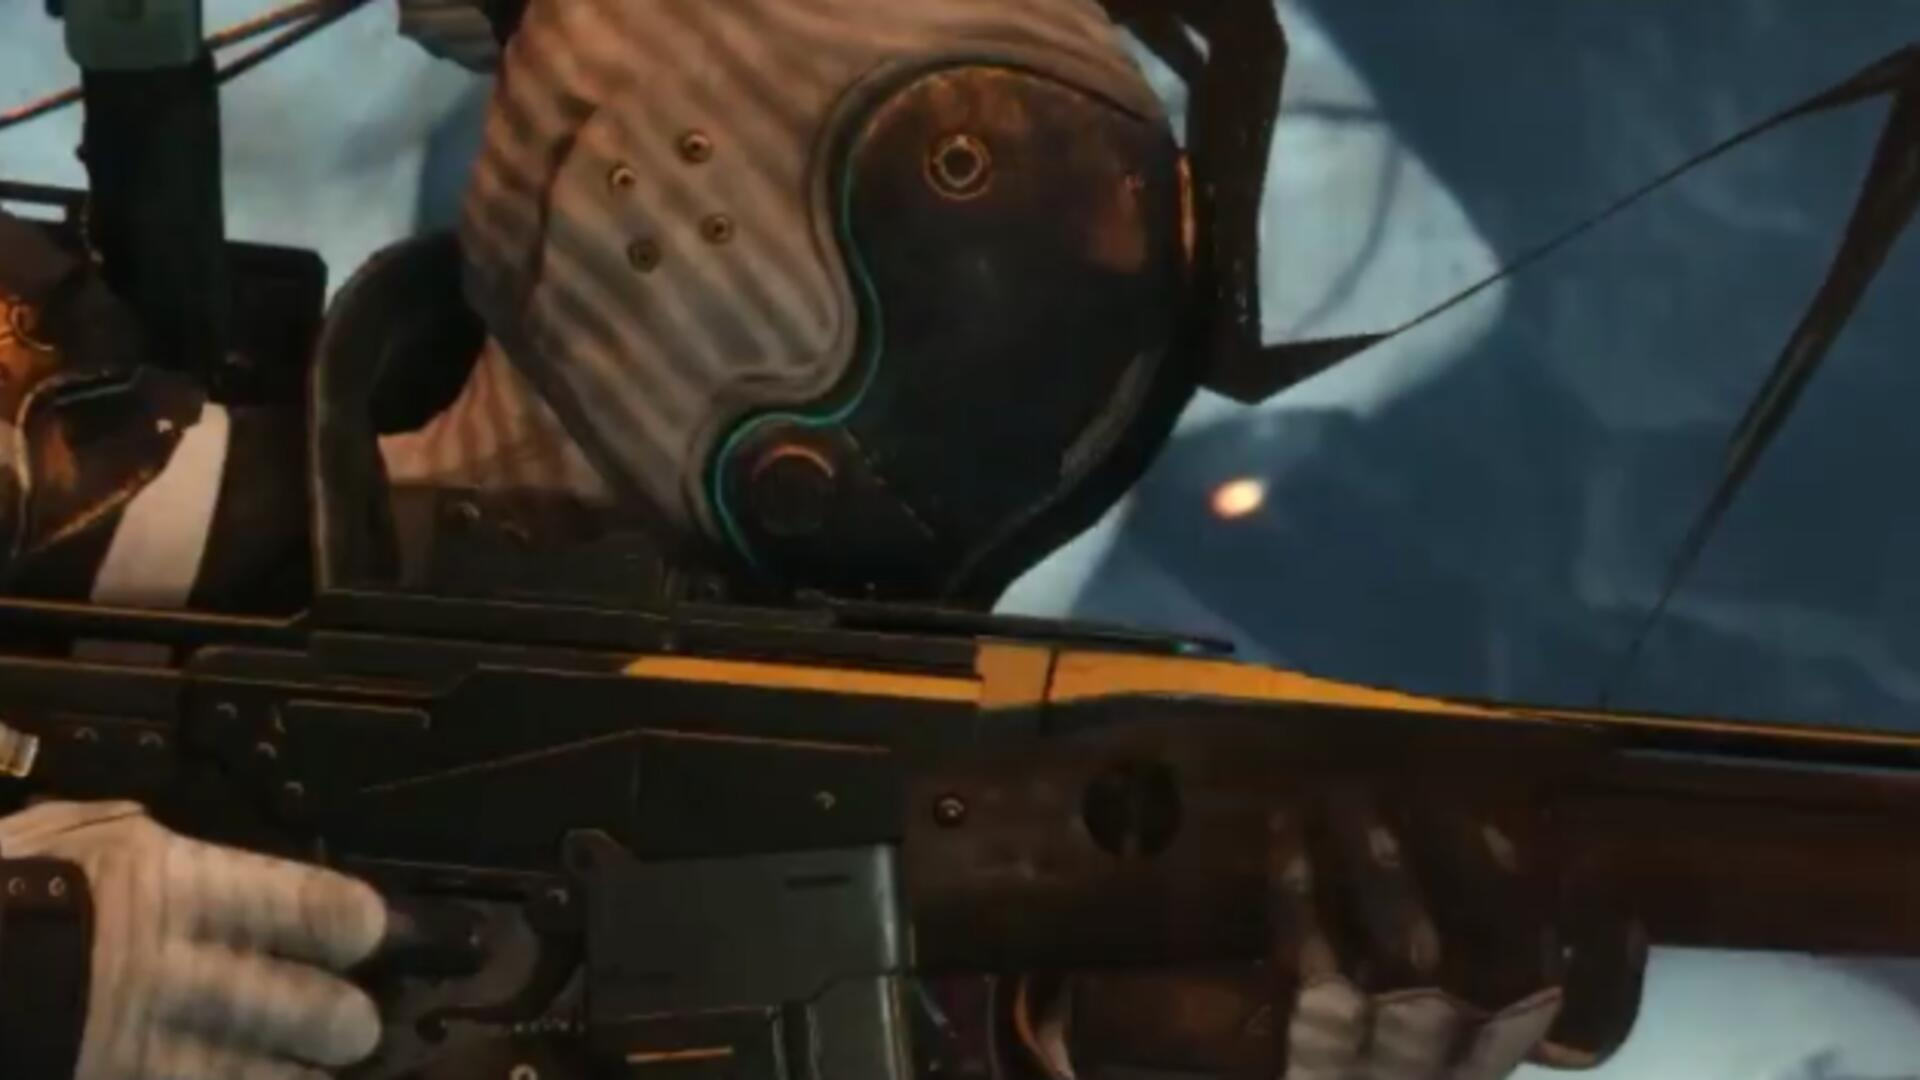 Destiny 2: Forsaken Post-Launch Content Roadmap Laid Out Through Summer 2019, Includes Return of Iron Banner and More